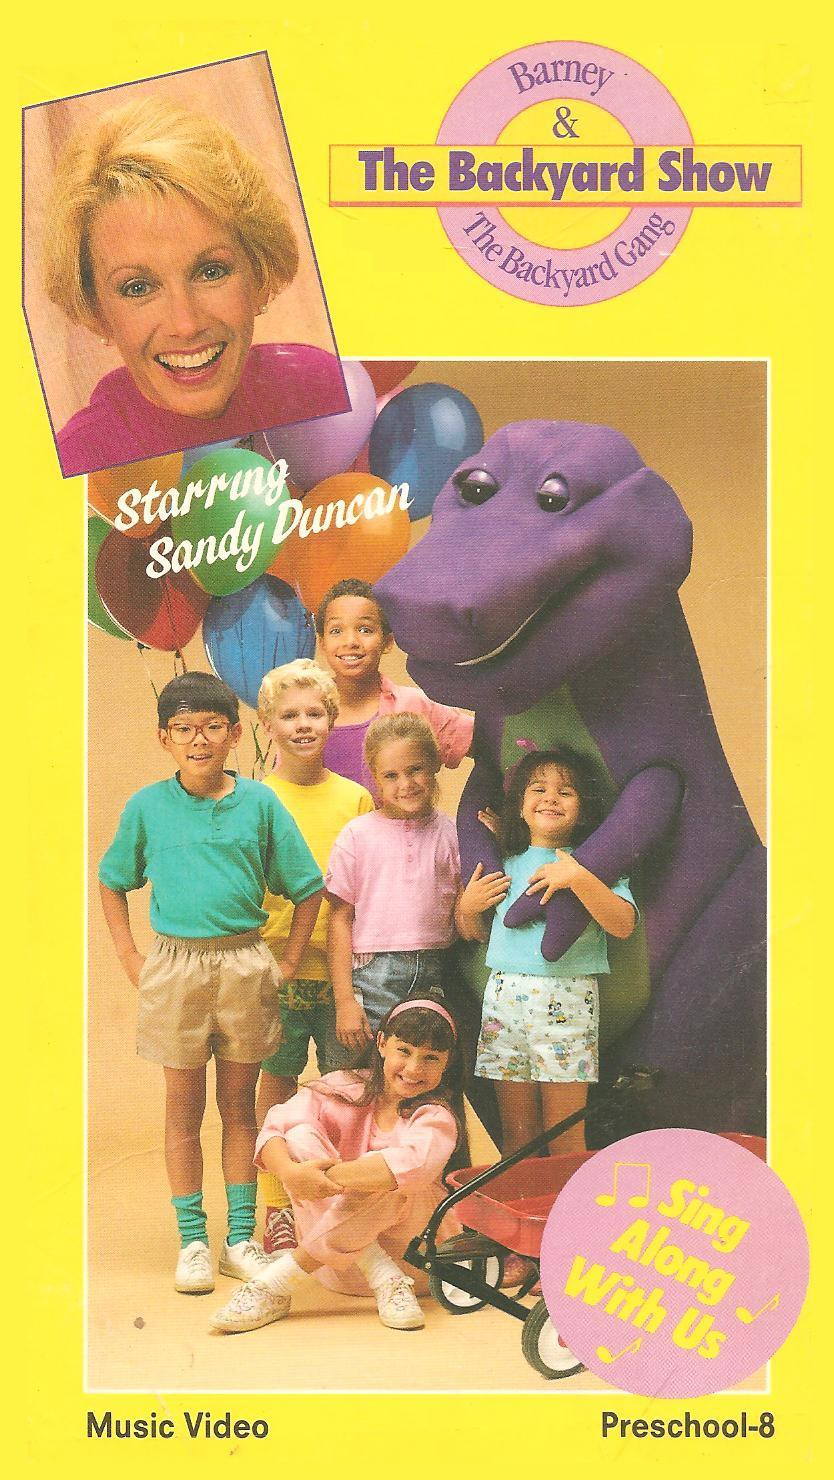 Best ideas about Barney The Backyard Show . Save or Pin Image Df JPG Barney Wiki Now.